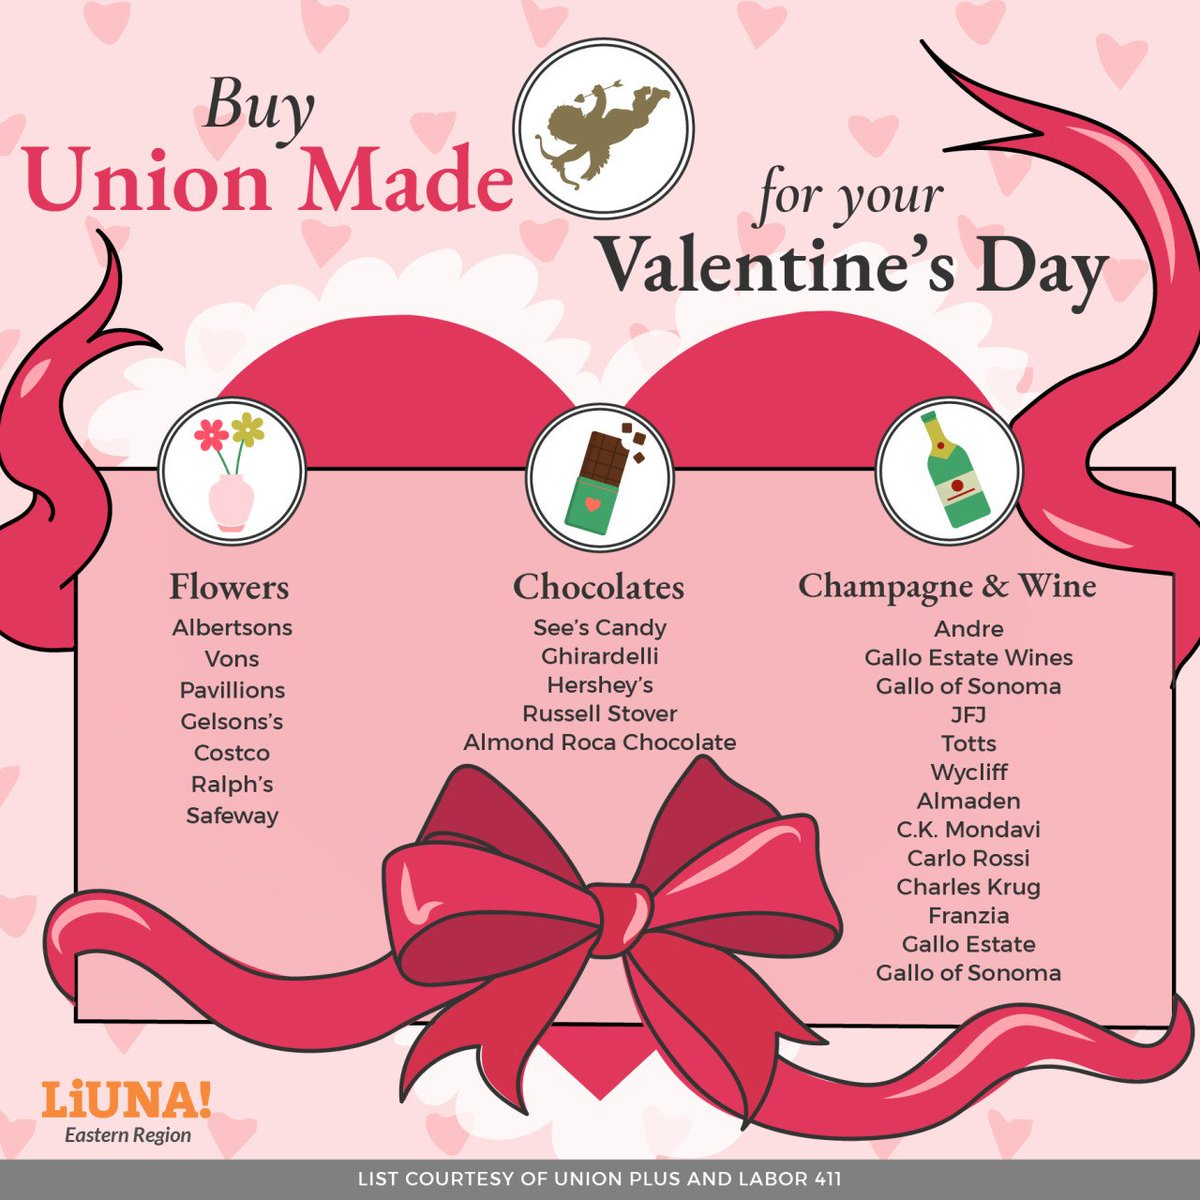 Go the extra mile for your sweetheart this #ValentinesDay and make their #ValentinesDayGift #UnionMade - because the only thing more #romantic than roses and chocolate is #solidarity.   Thanks, as always, to @UnionPlus & @Labor411 for the lists.  #LIUNA #UnionStrong #BuyUnion #1u